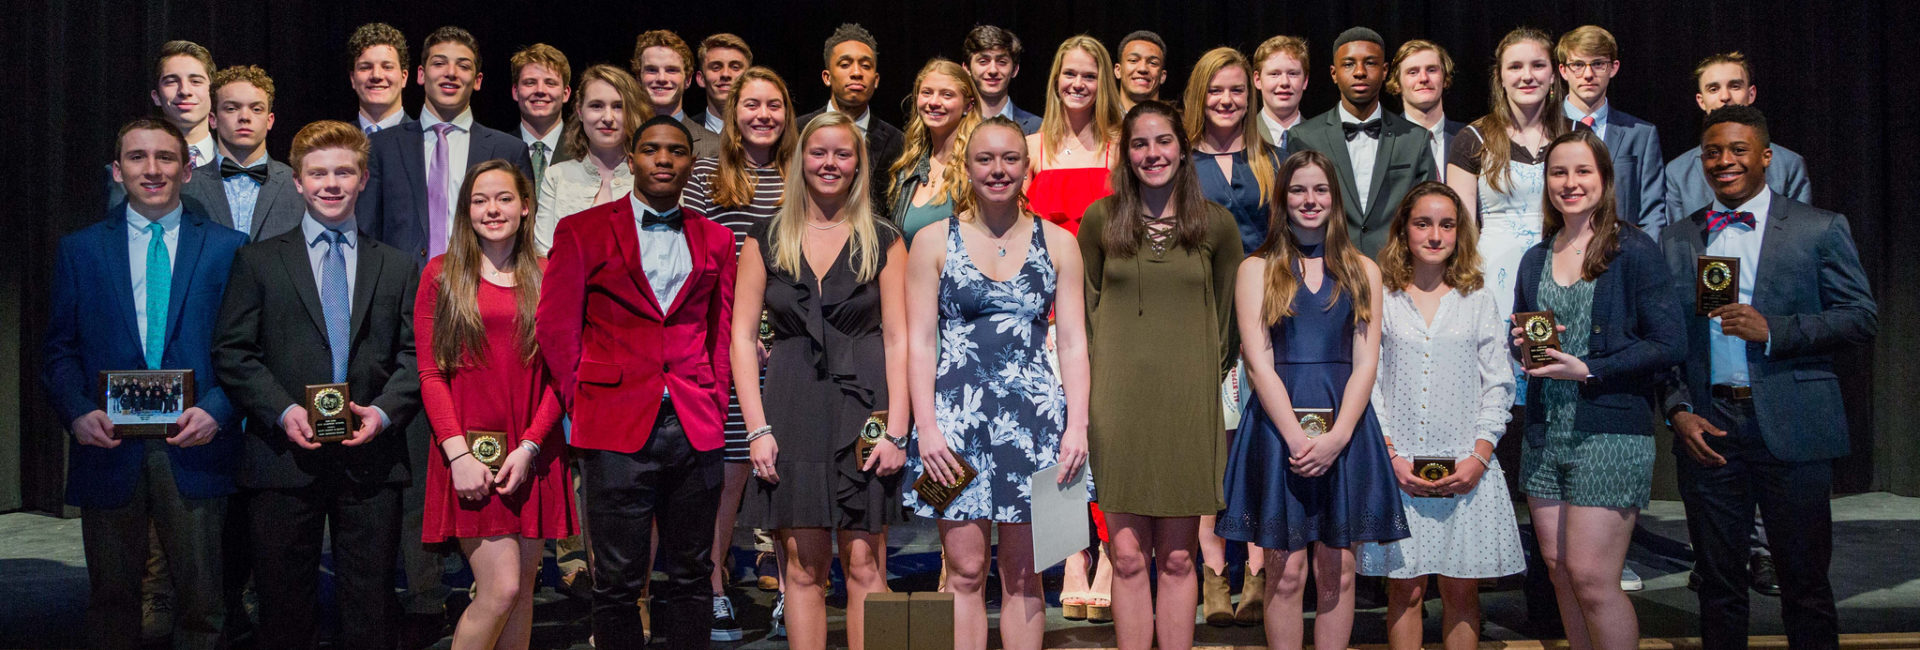 Student-Athletes at NHS Winter Sports Awards